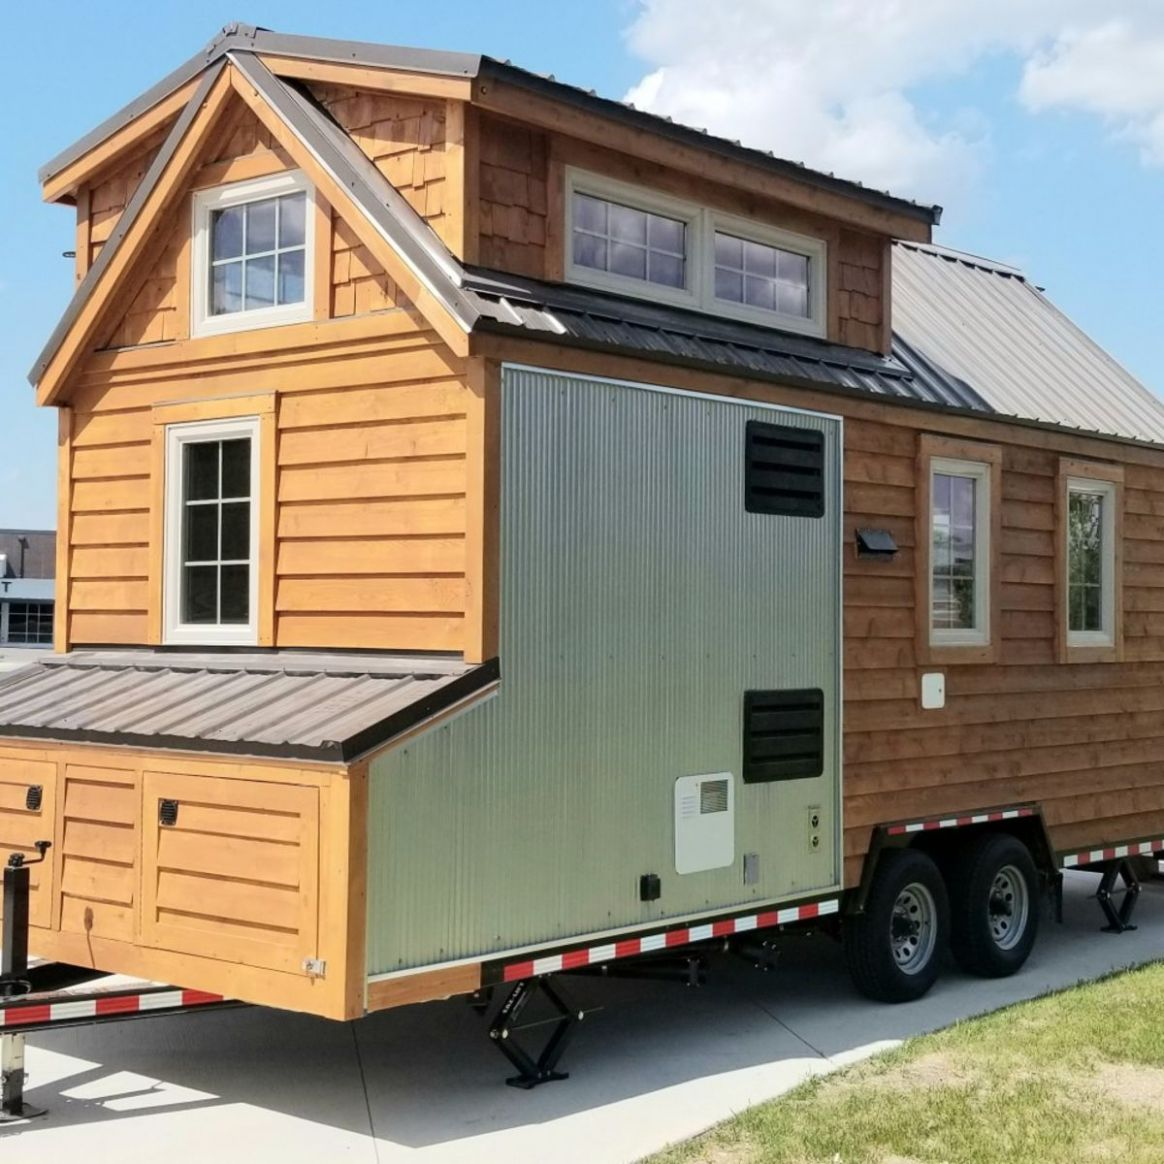 9' Tiny House with exterior storage compartments and fold down deck. -  Tiny House for Sale in Hutchinson, Minnesota - Tiny House Listings